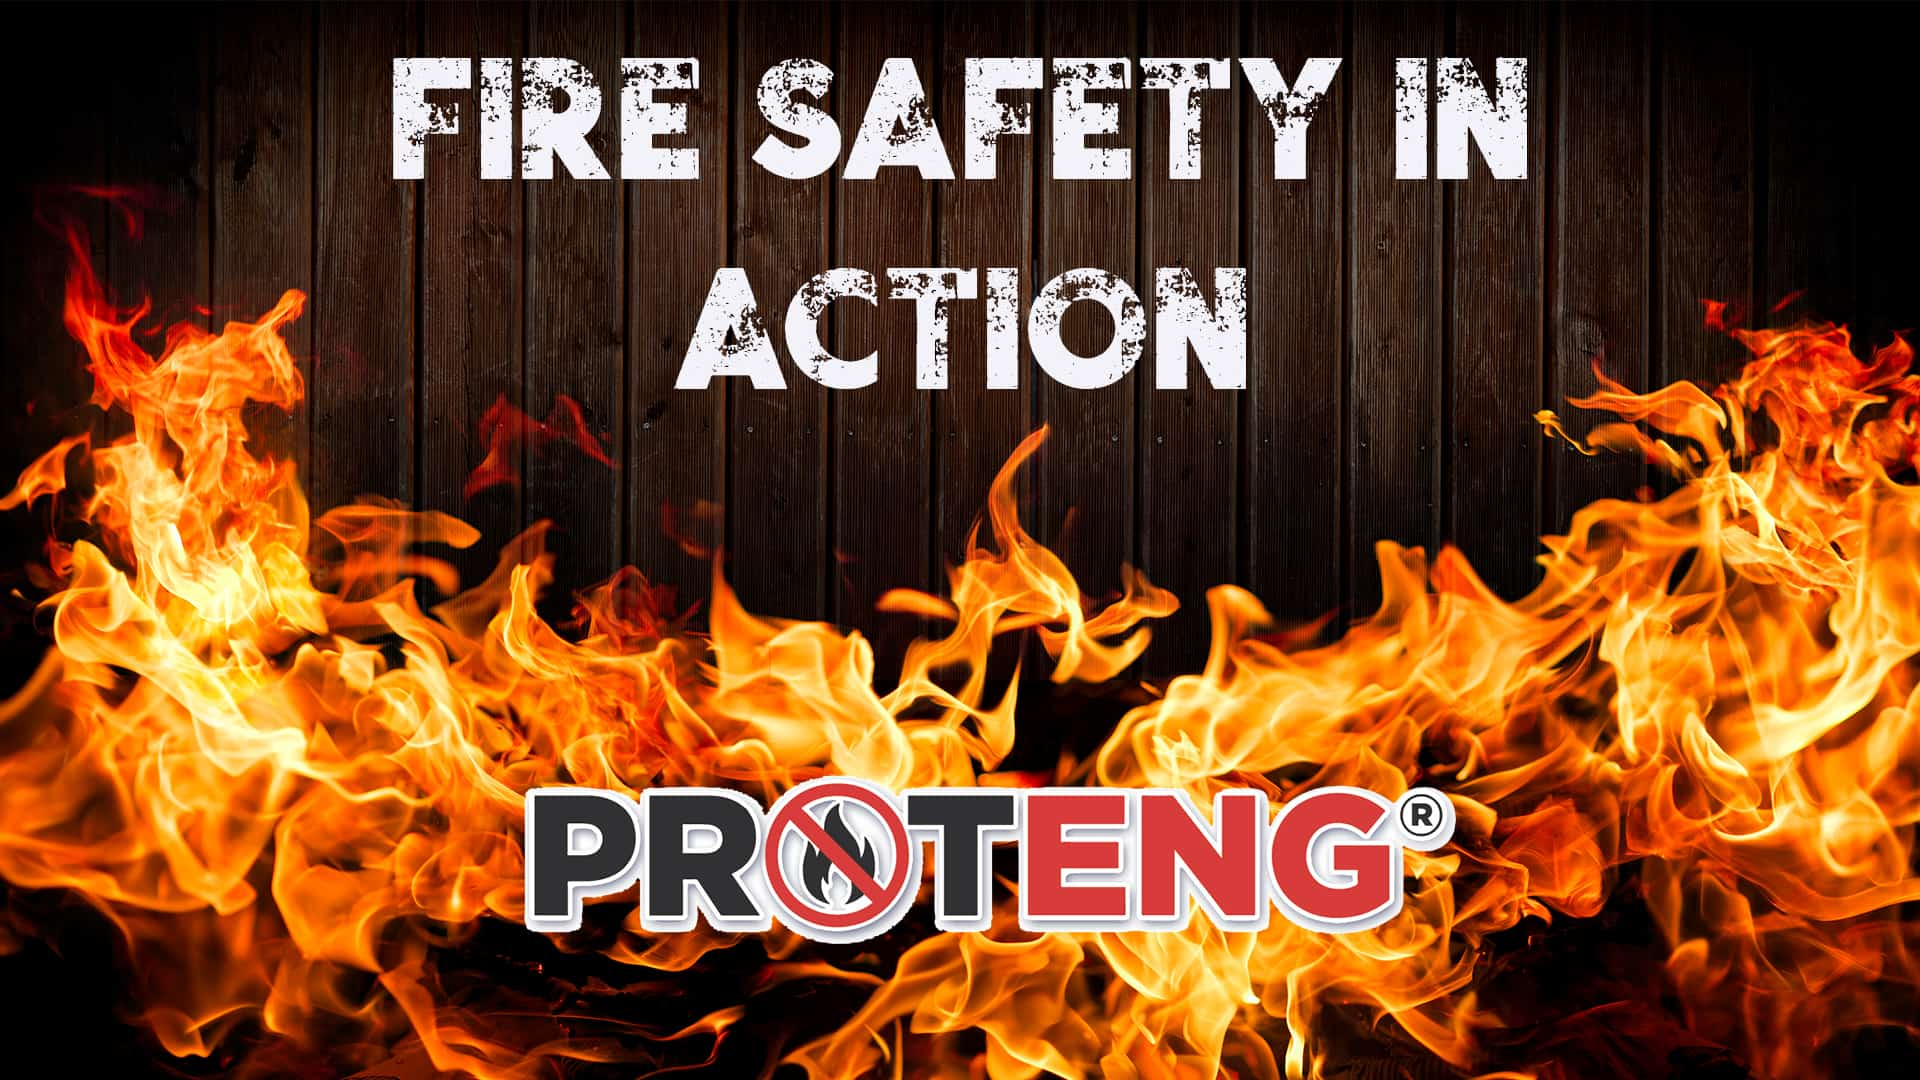 Proteng UTV Fire Suppression system in action